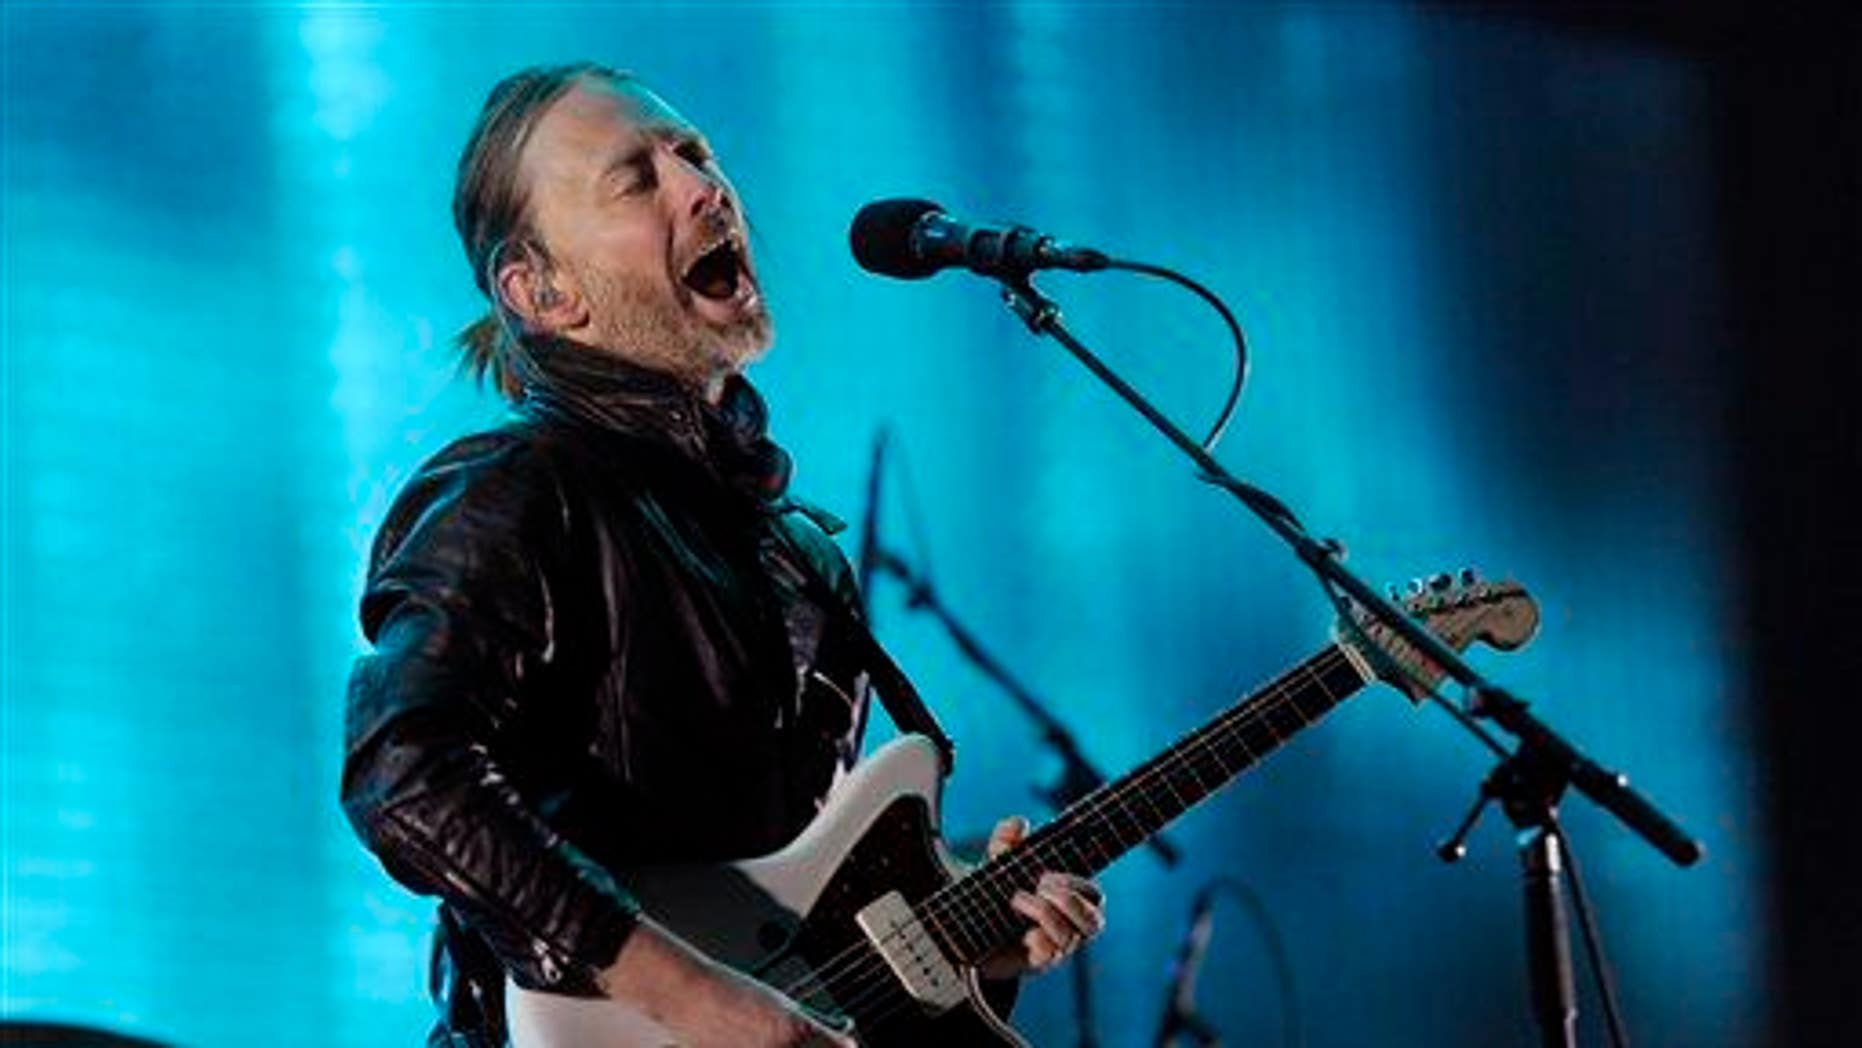 Thom Yorke of Radiohead performs during the band's headlining set on the first weekend of the 2012 Coachella Valley Music and Arts Festival on April 14, 2012, in Indio, Calif.